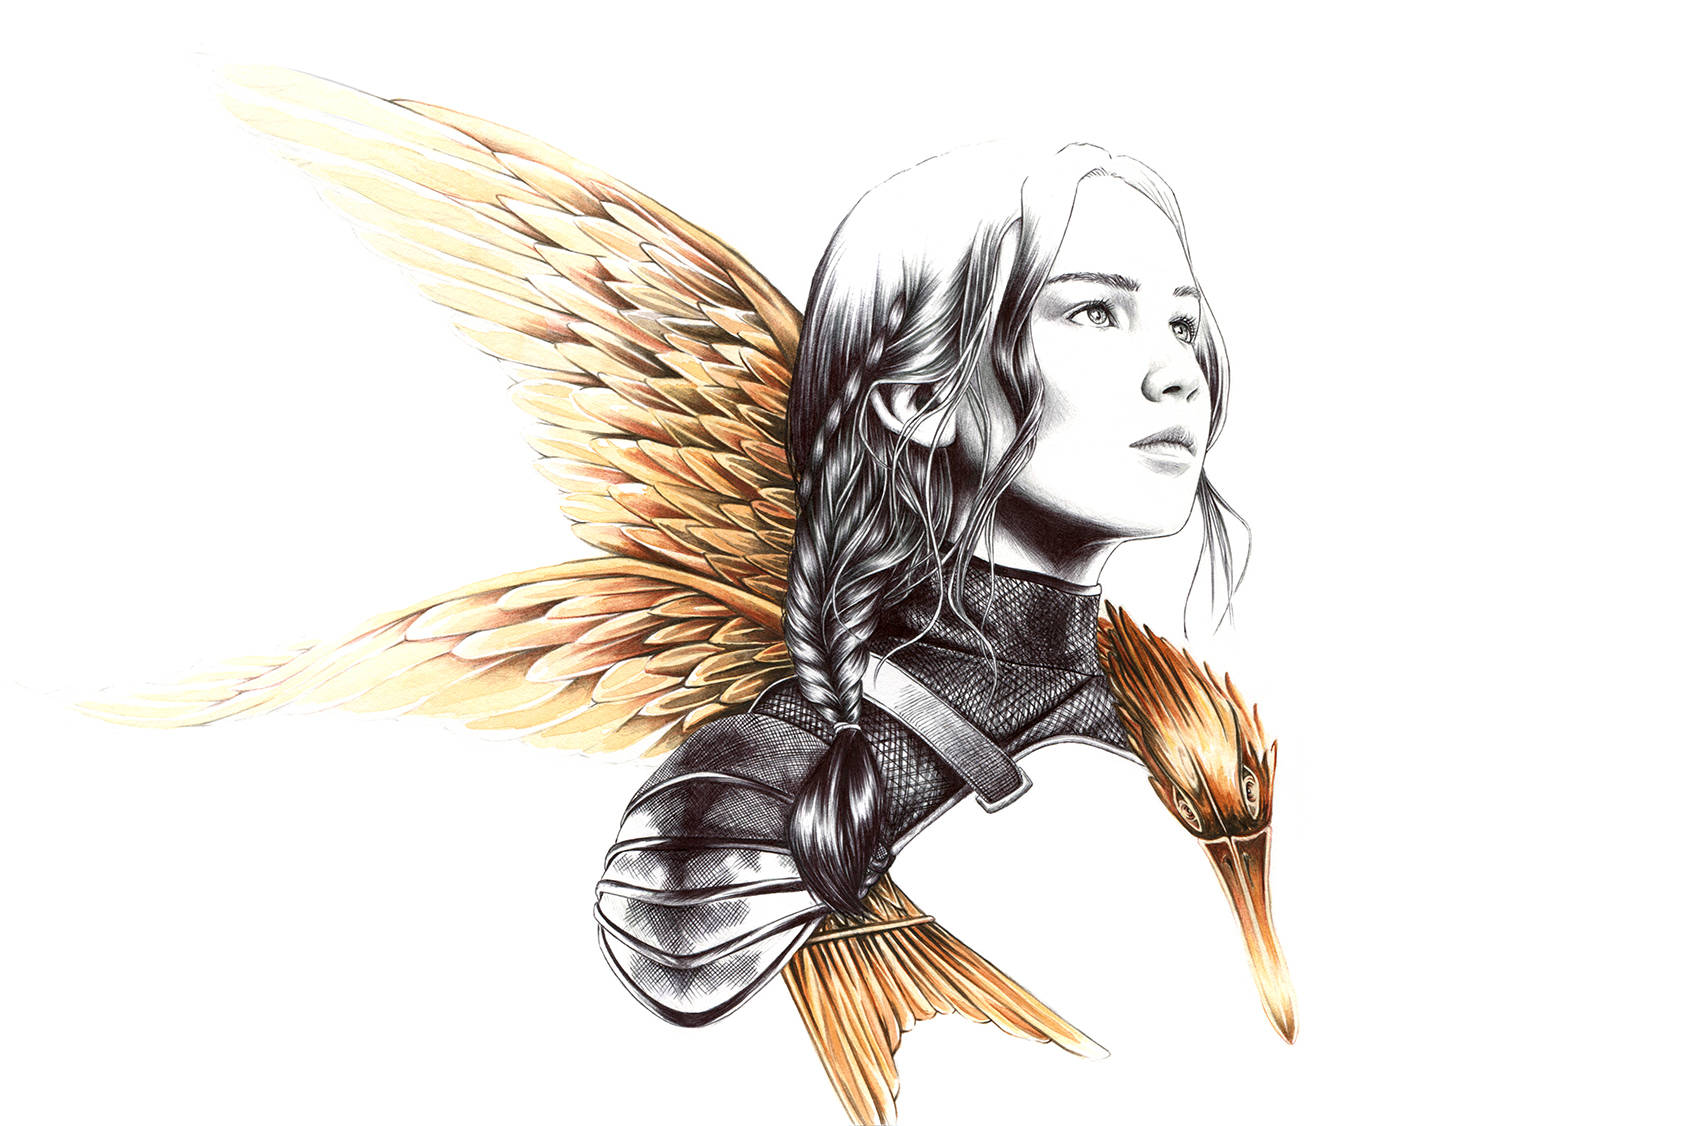 Katniss Everdeen by Florian Meacci.